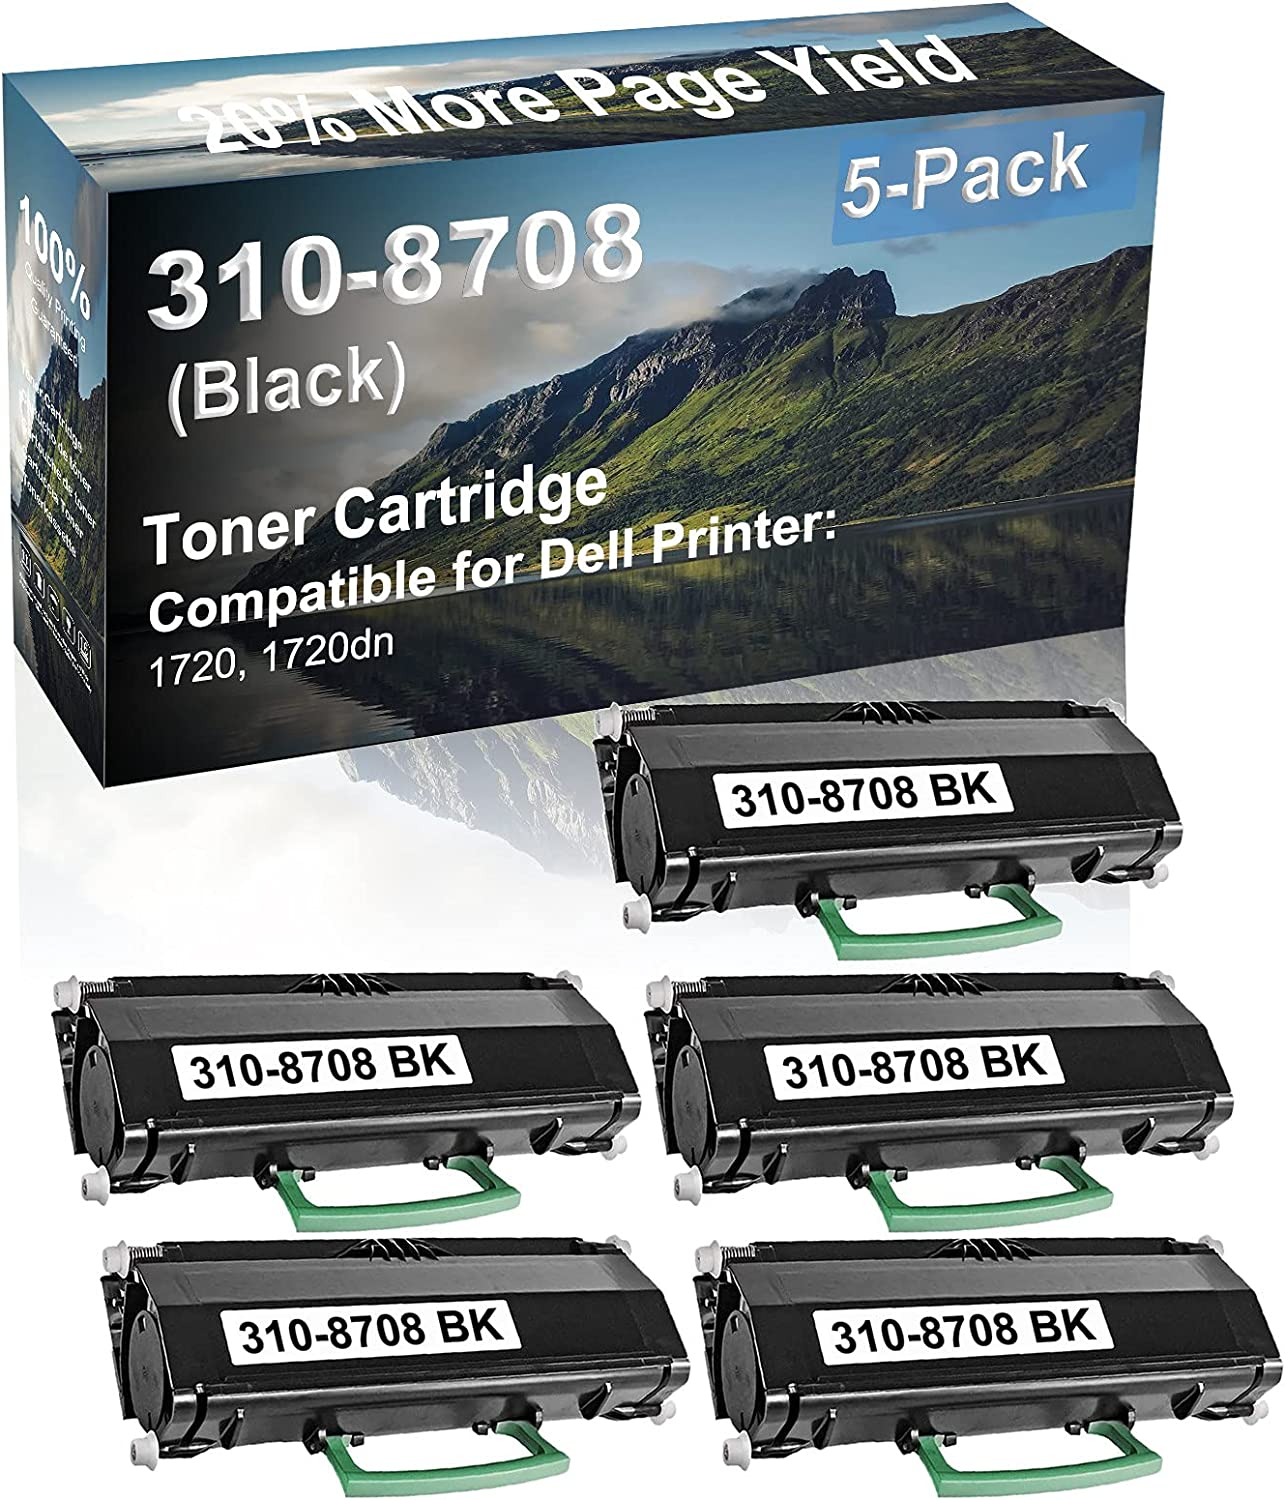 5-Pack Compatible High Capacity 1720, 1720dn Printer Toner Cartridge Replacement for Dell 310-8708 Printer Cartridge (Black)